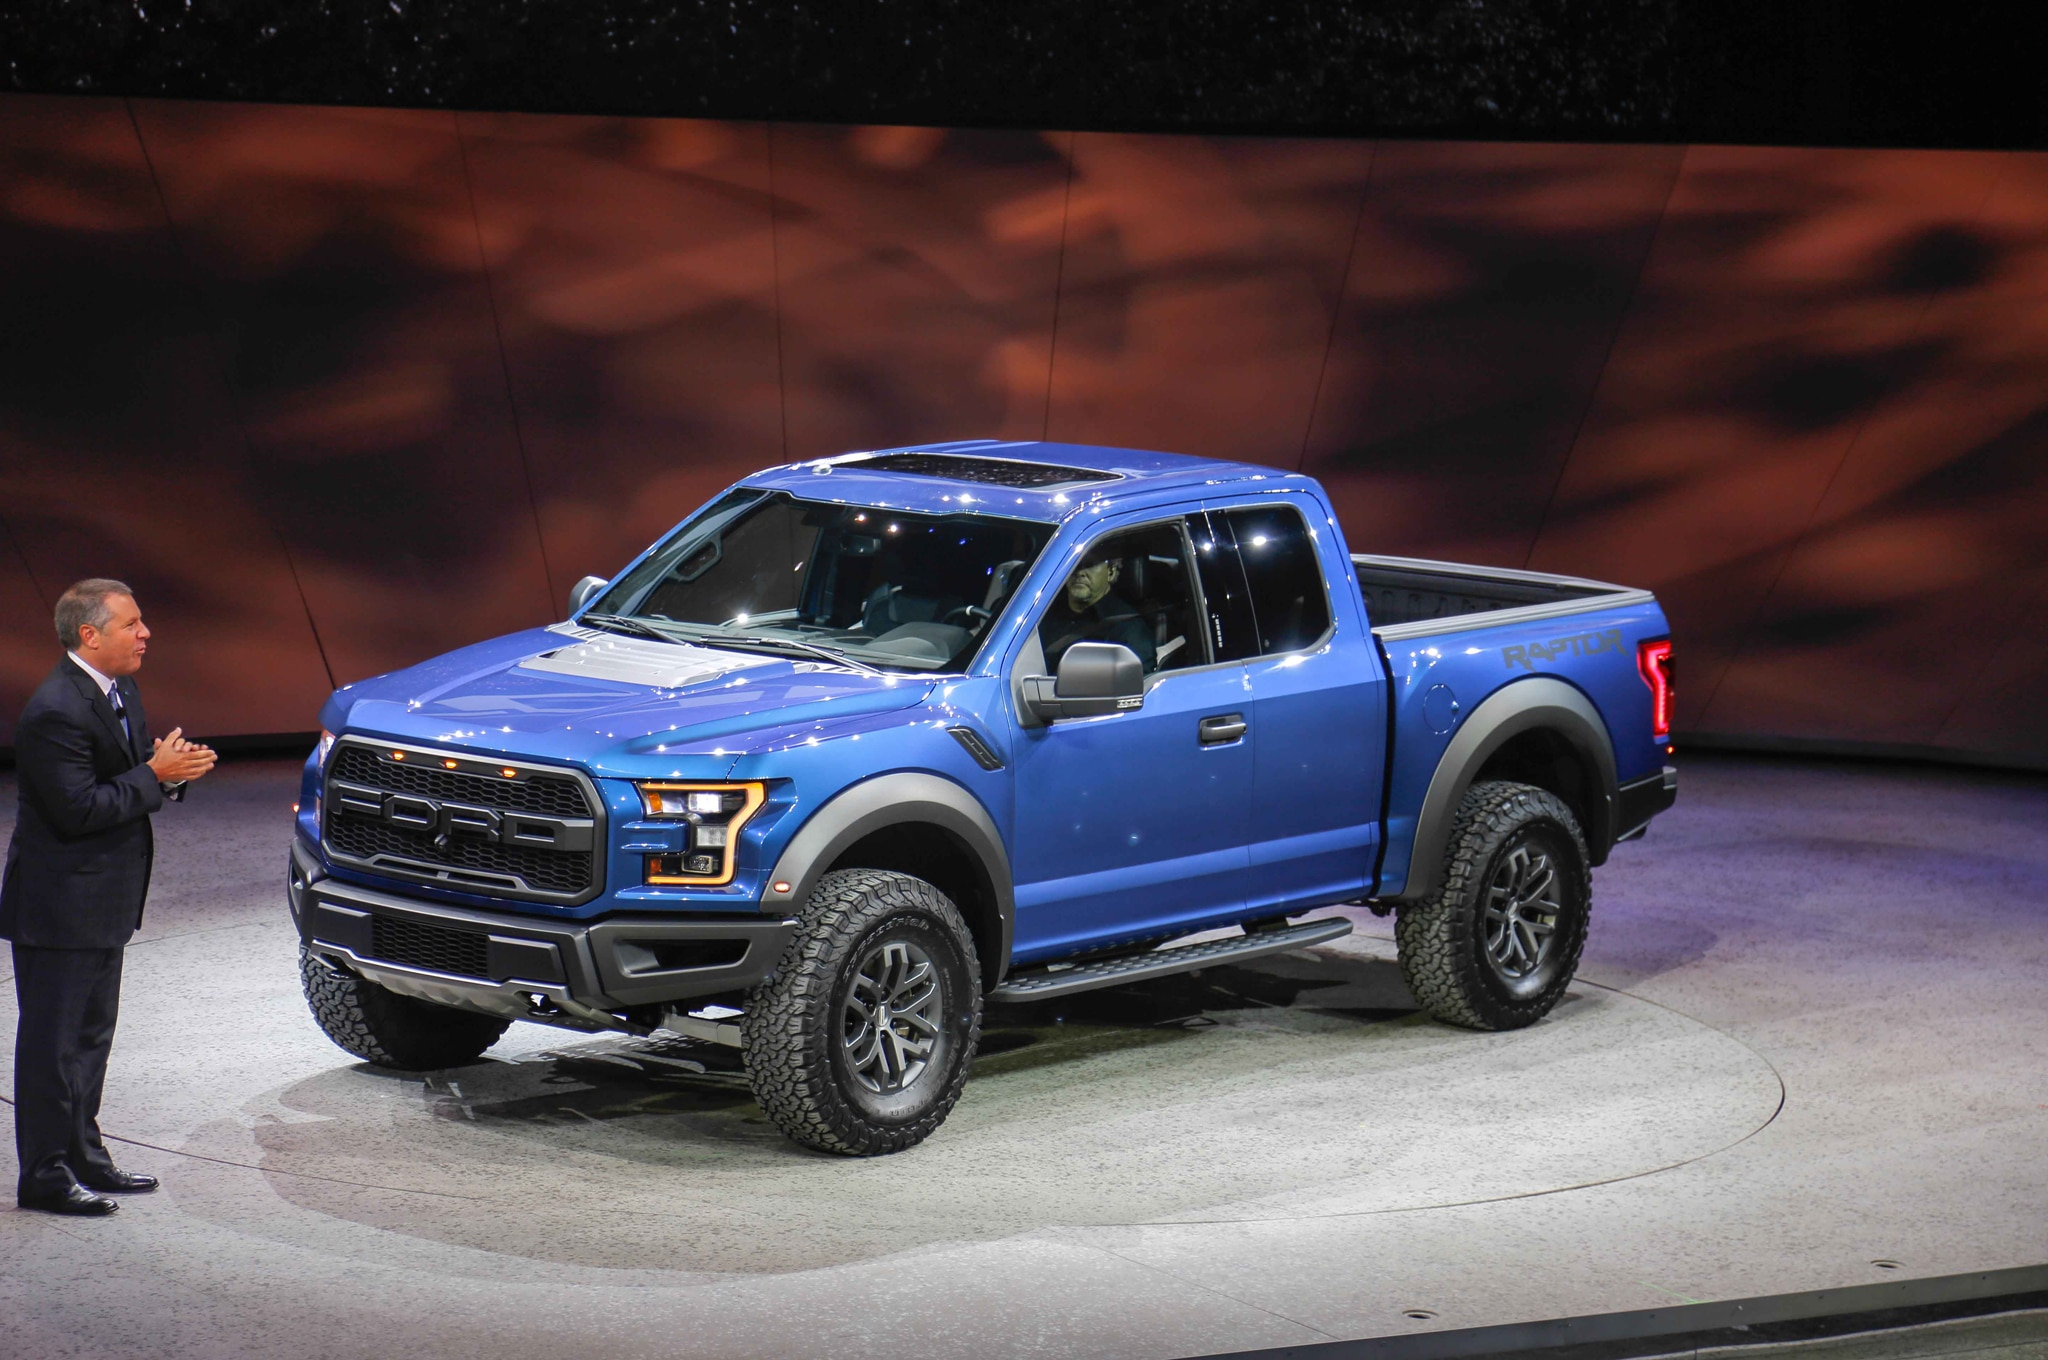 2017 Ford F-150 SVT Raptor Adds 3.5-Liter EcoBoost, 10-Speed Automatic